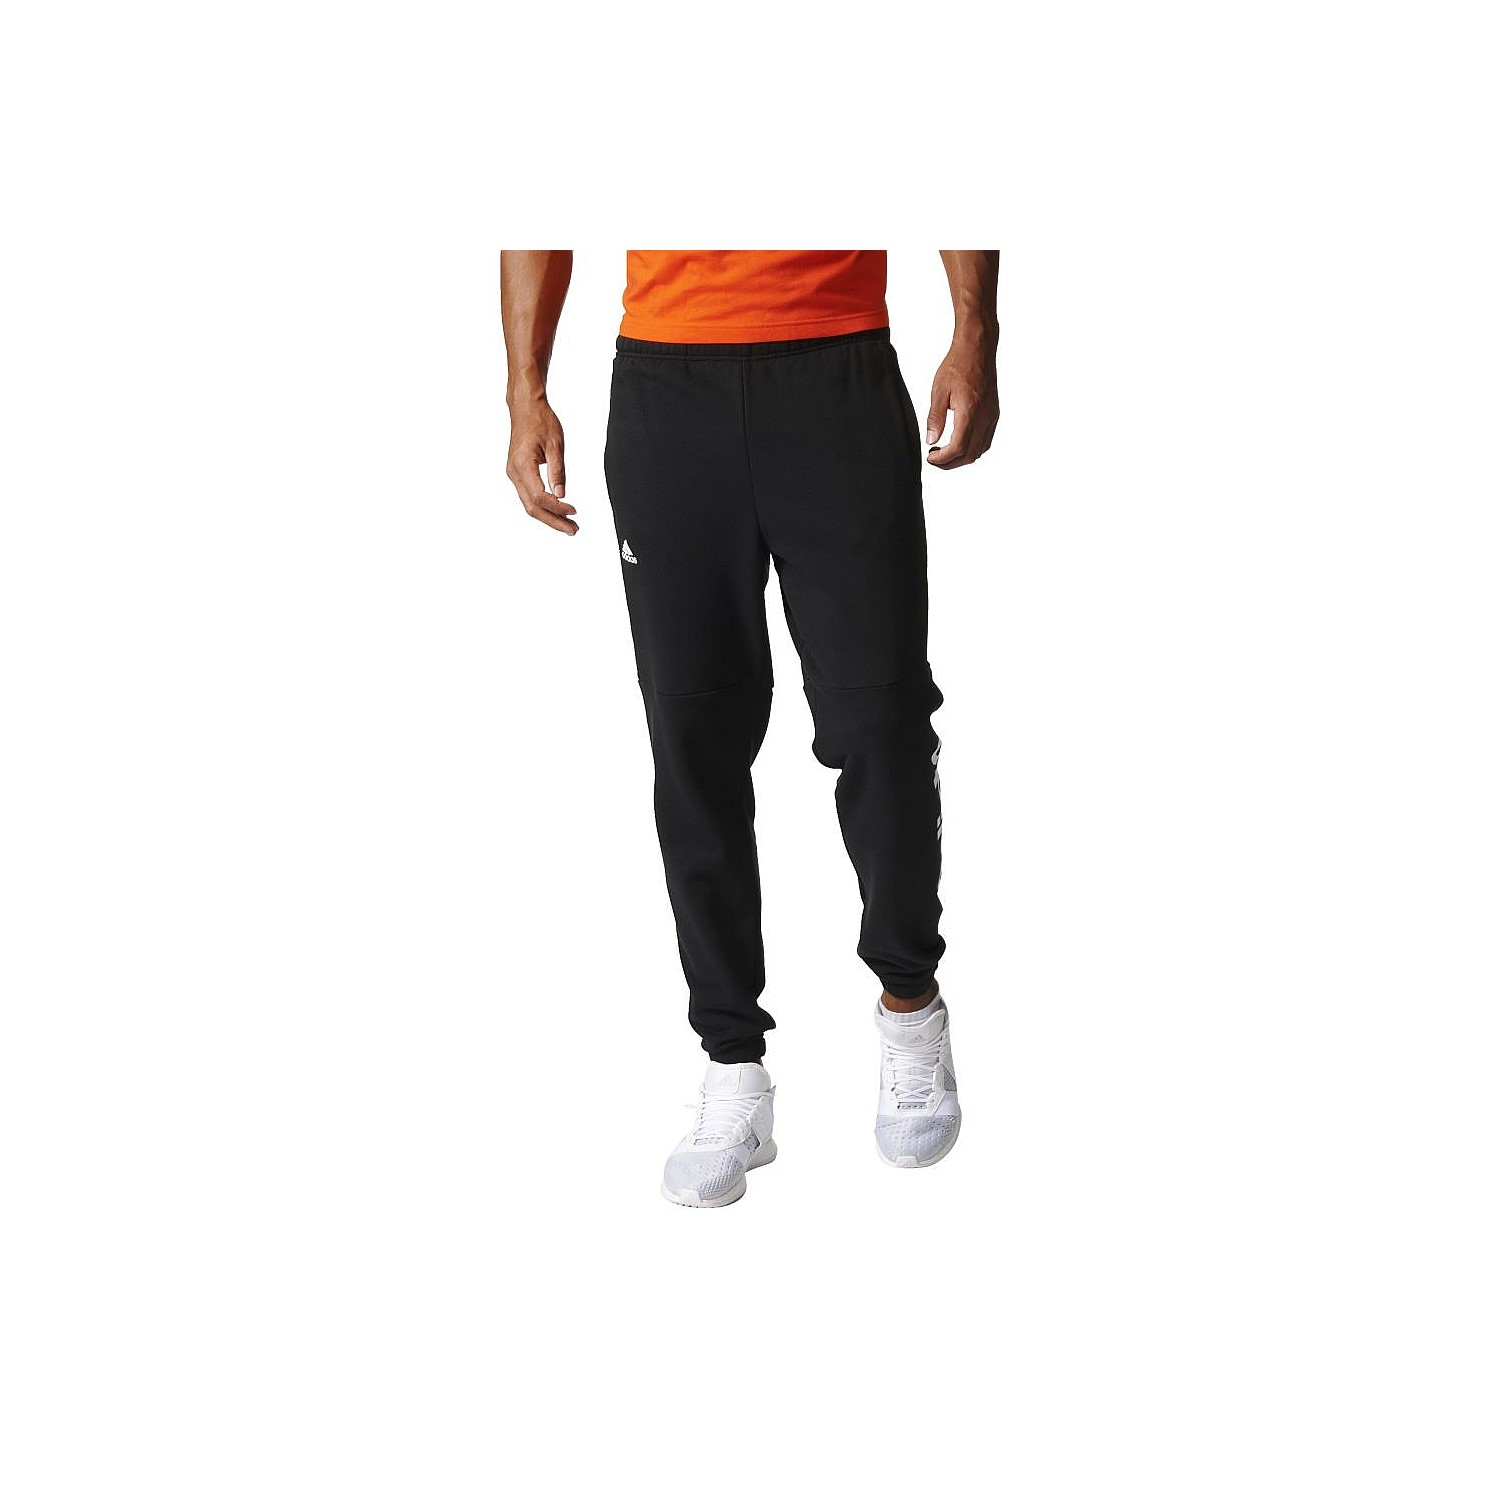 66b8a55cf18b1 Essentials Linear Logo Pants